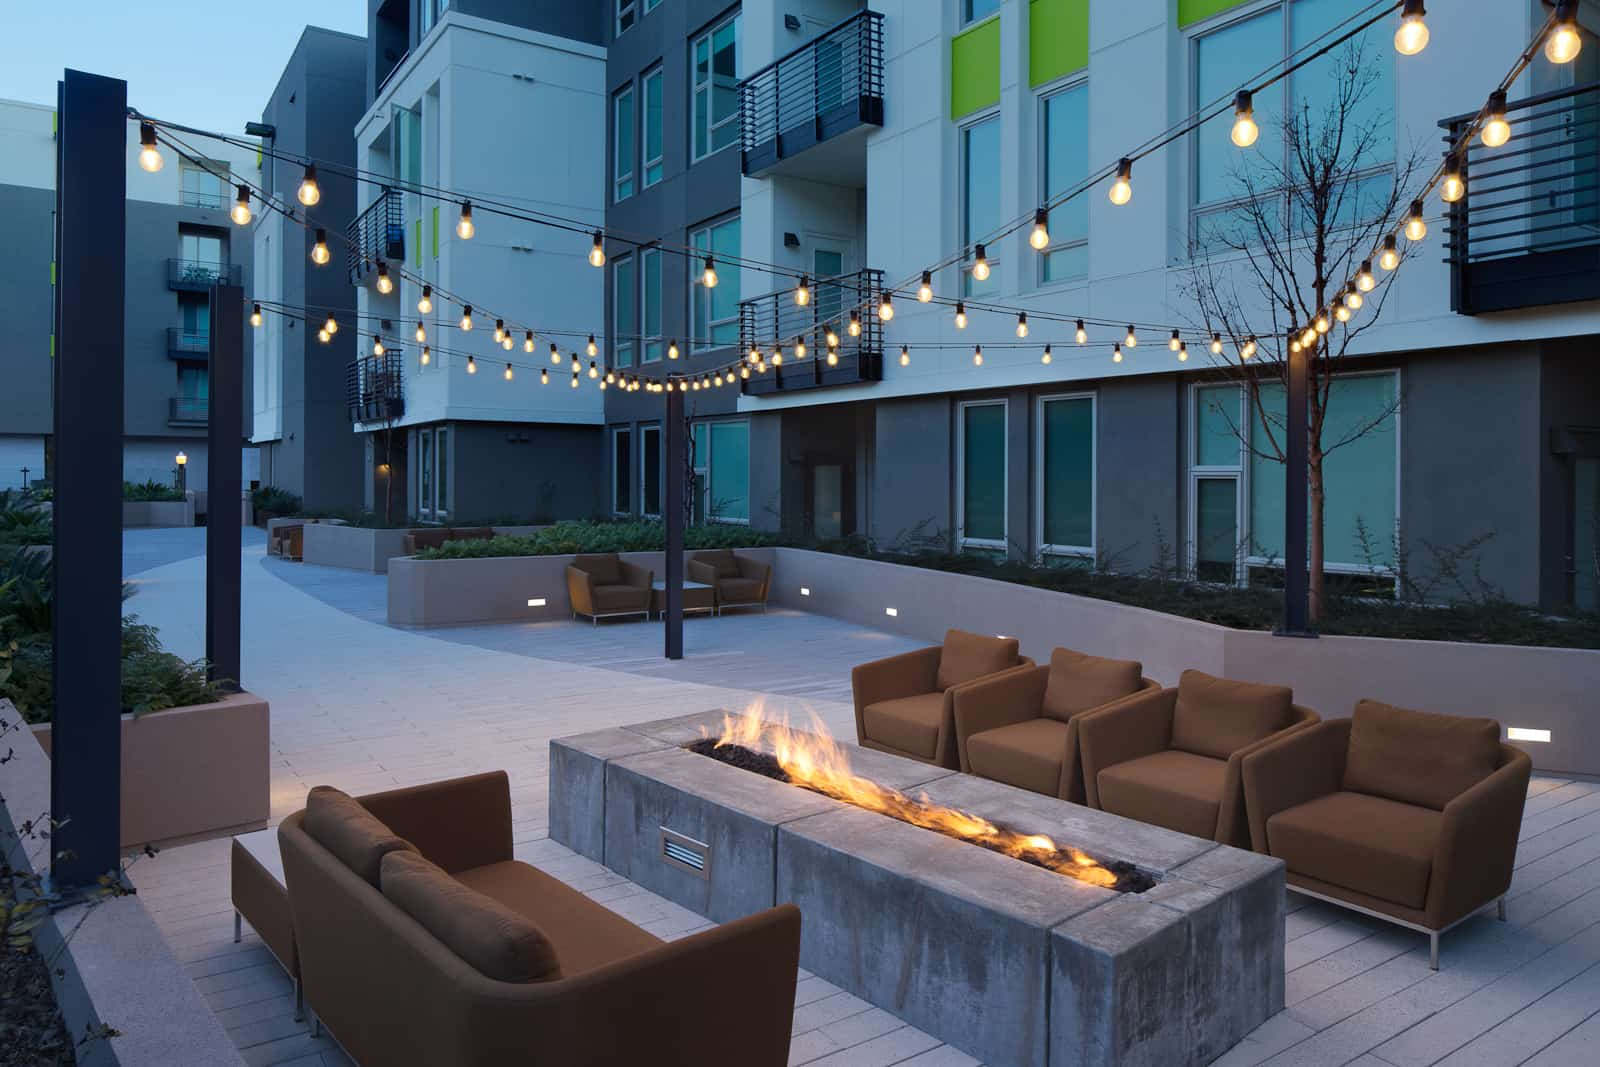 Exterior of firepit and outdoor chairs with string lights above at dusk.